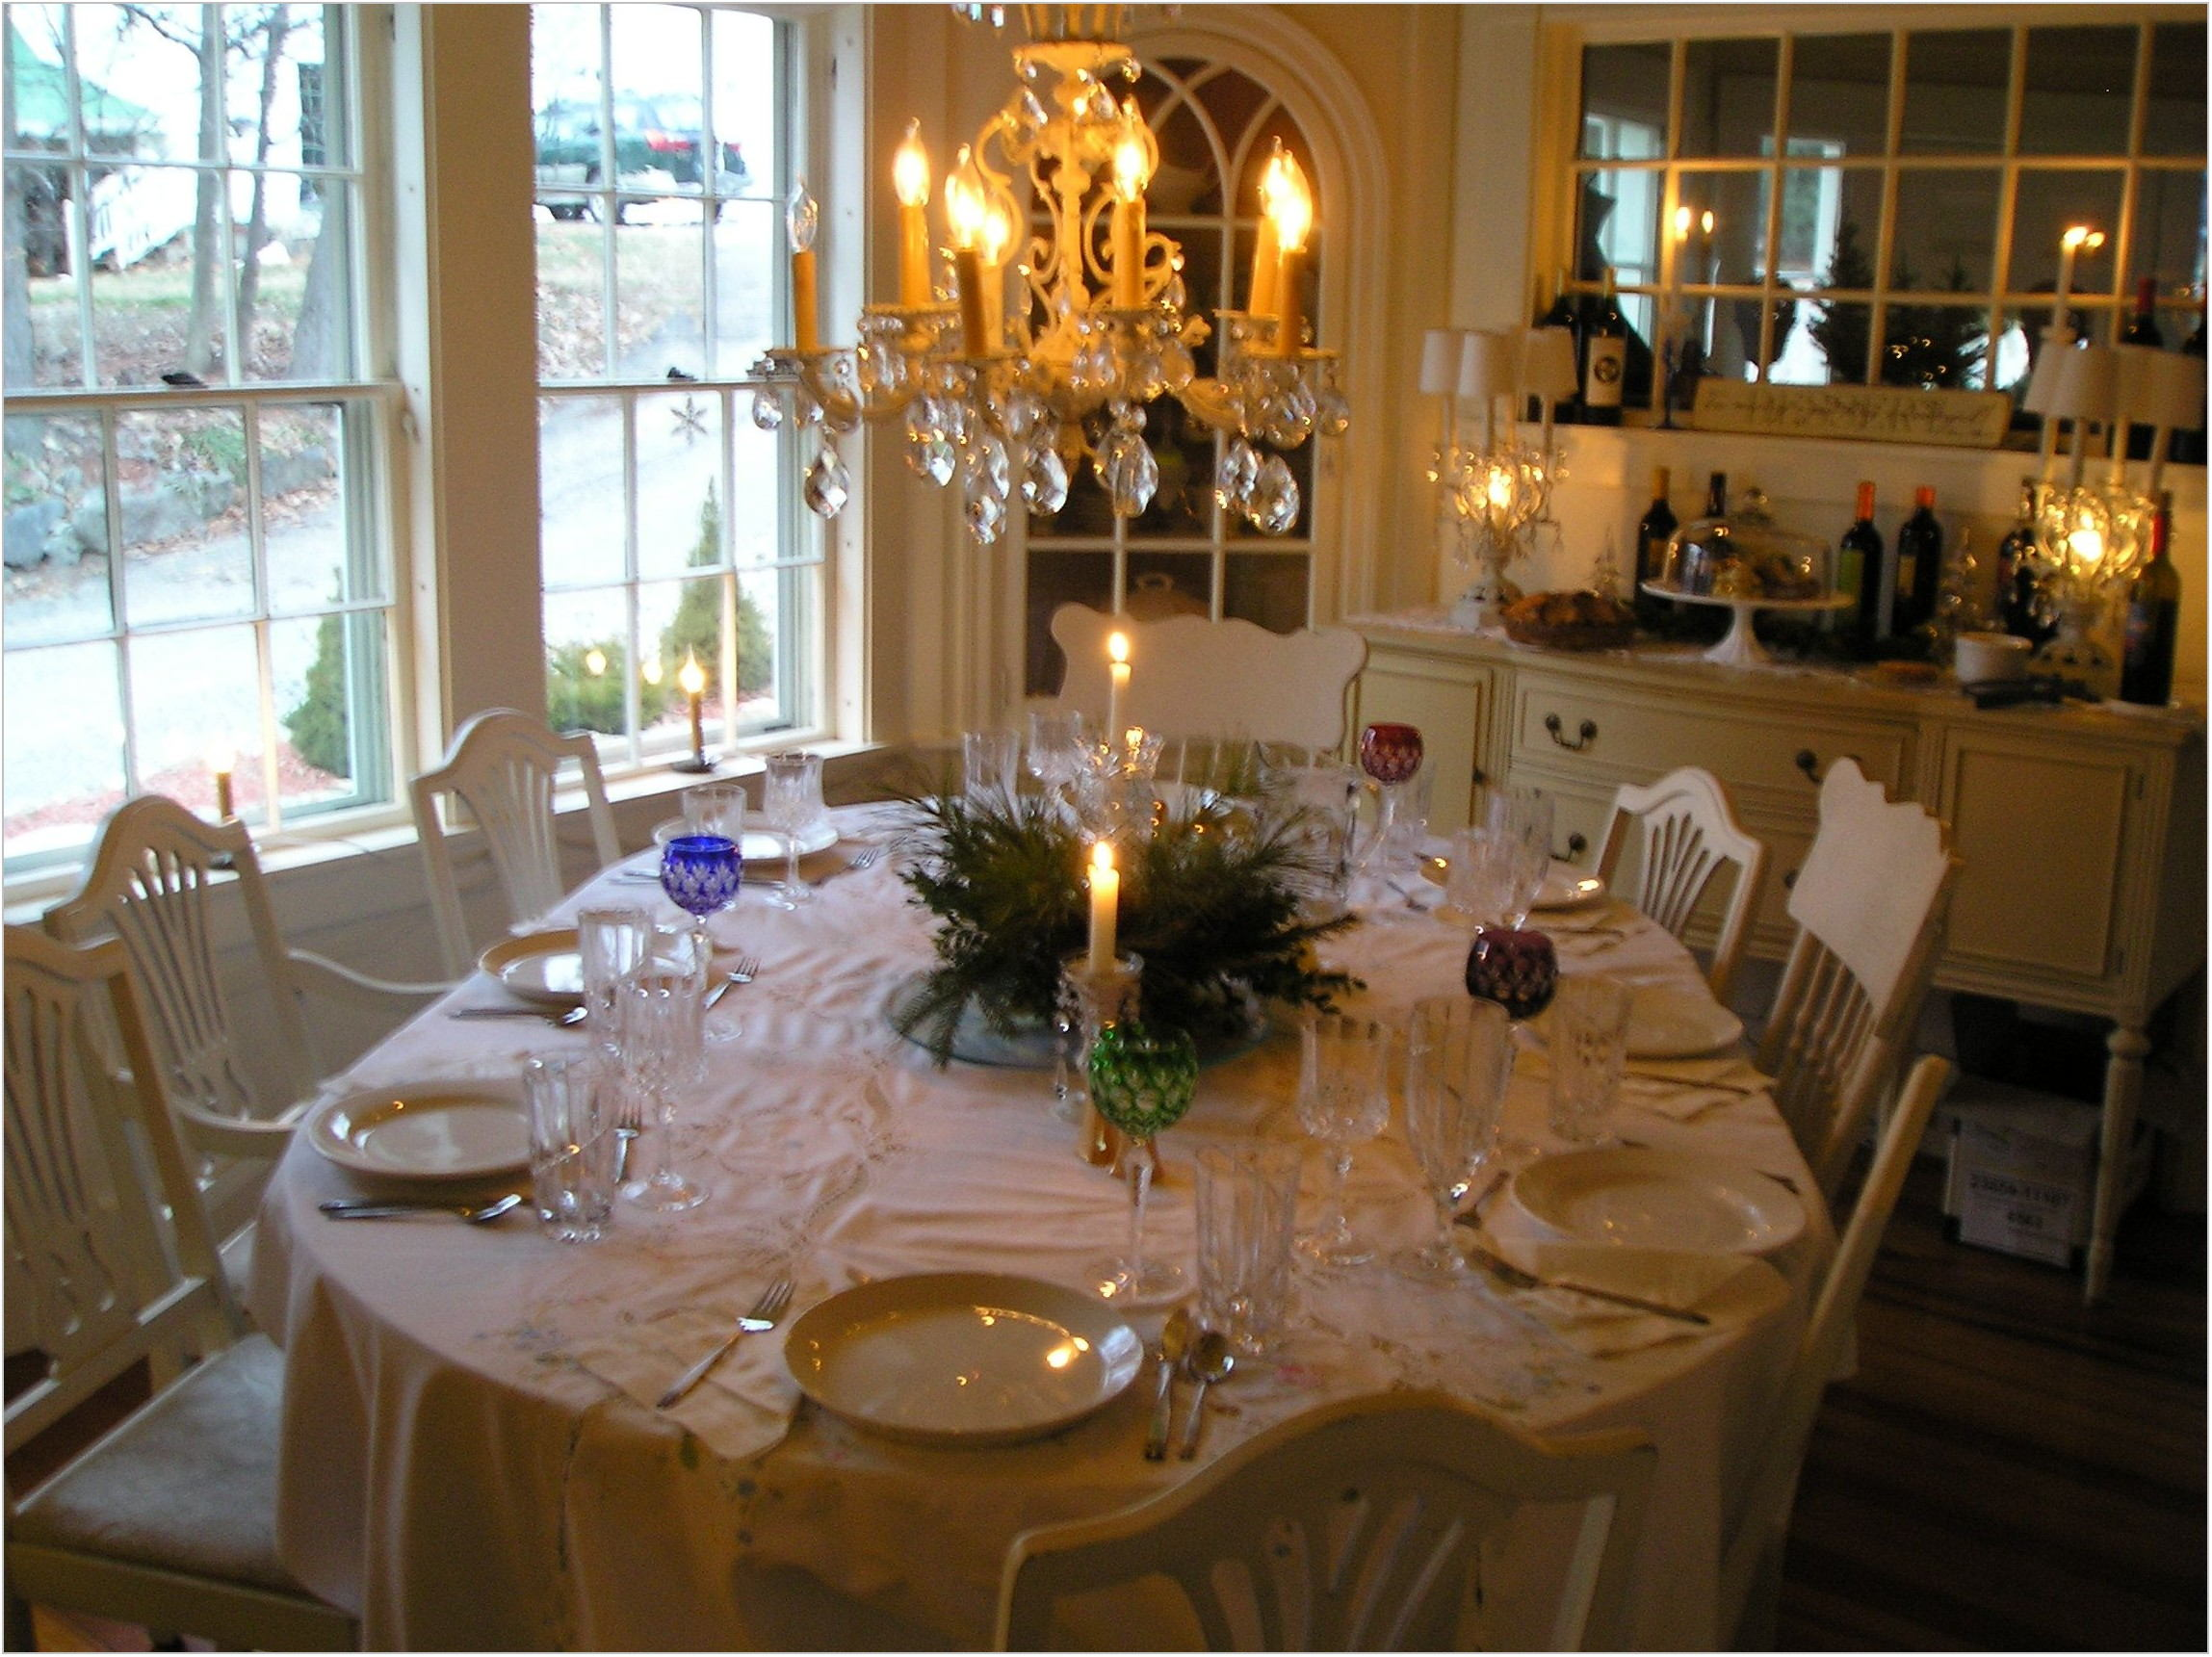 Pictures Of Decorated Dining Room Tables